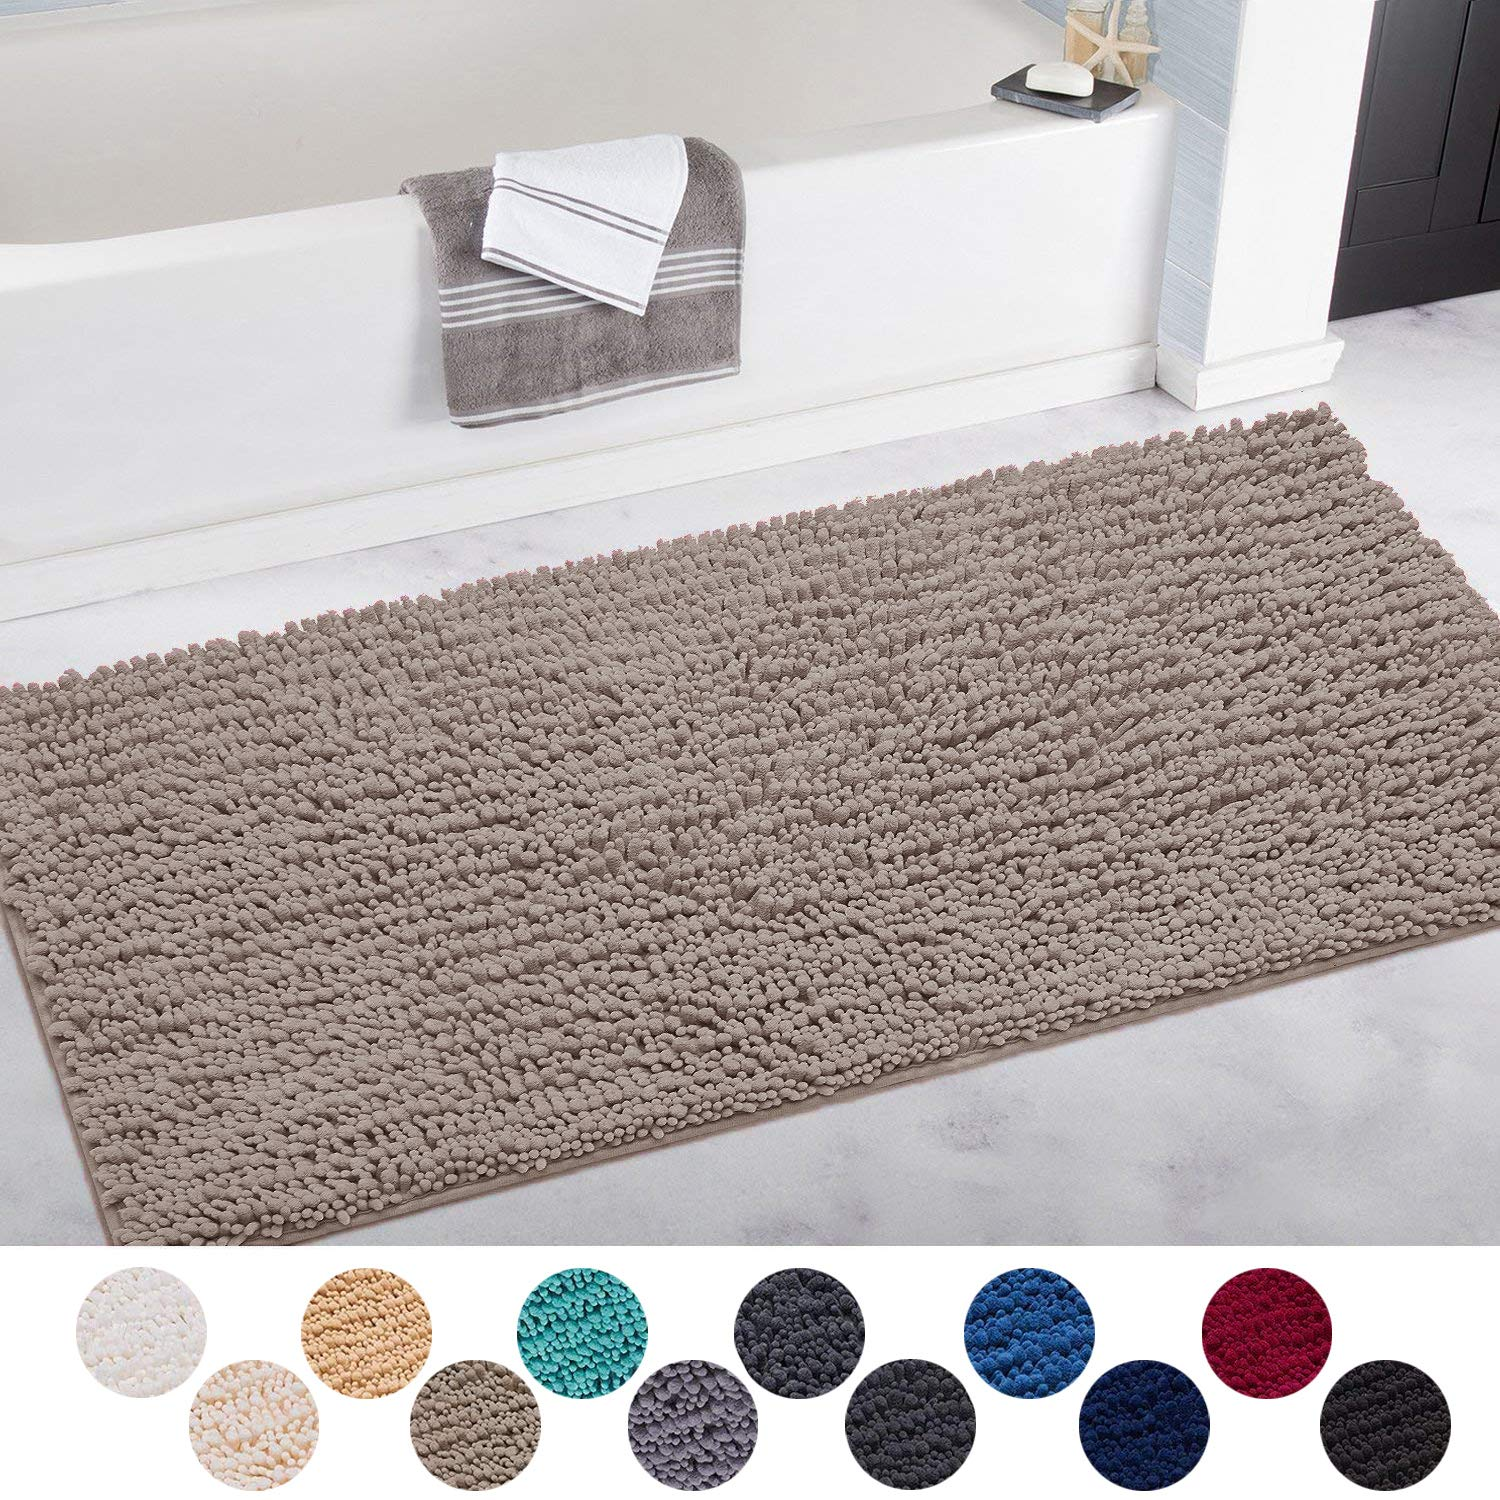 DEARTOWN Non-Slip Shaggy Bathroom Rug,Soft Microfibers Bath Mat with Water Absorbent, Machine Washable (31x59 Inches, Beige)